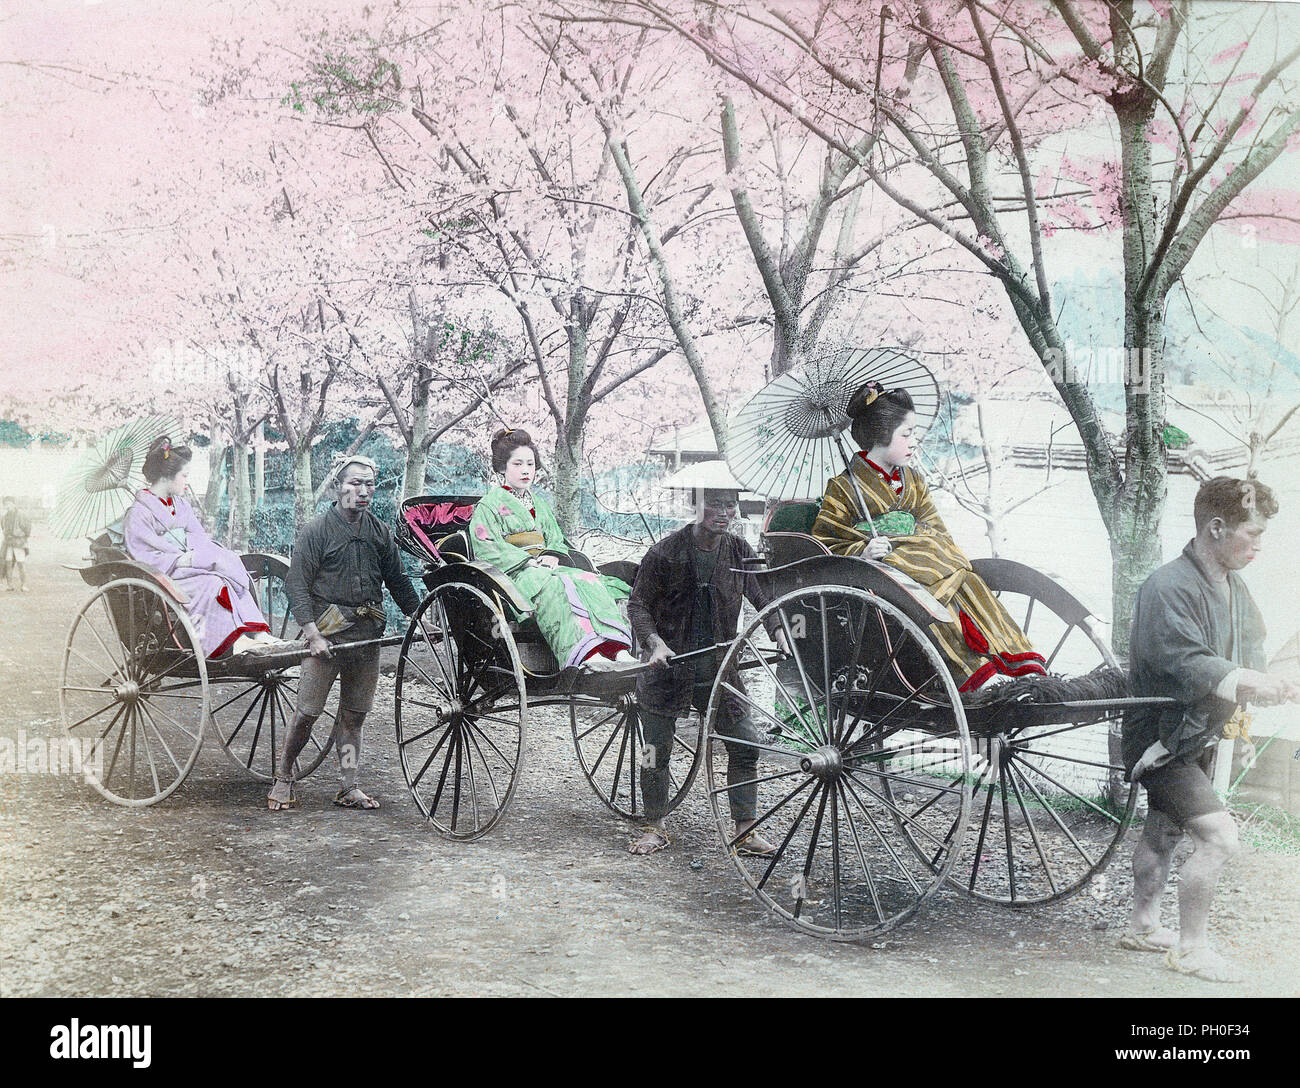 [ 1890s Japan - Three Rickshaws with Women in Kimono ] —   Three women in kimono and rickshaw pullers wearing conical hats (sugegasa) below cherry blossom. Two of the women carry parasols.  19th century vintage albumen photograph. - Stock Image